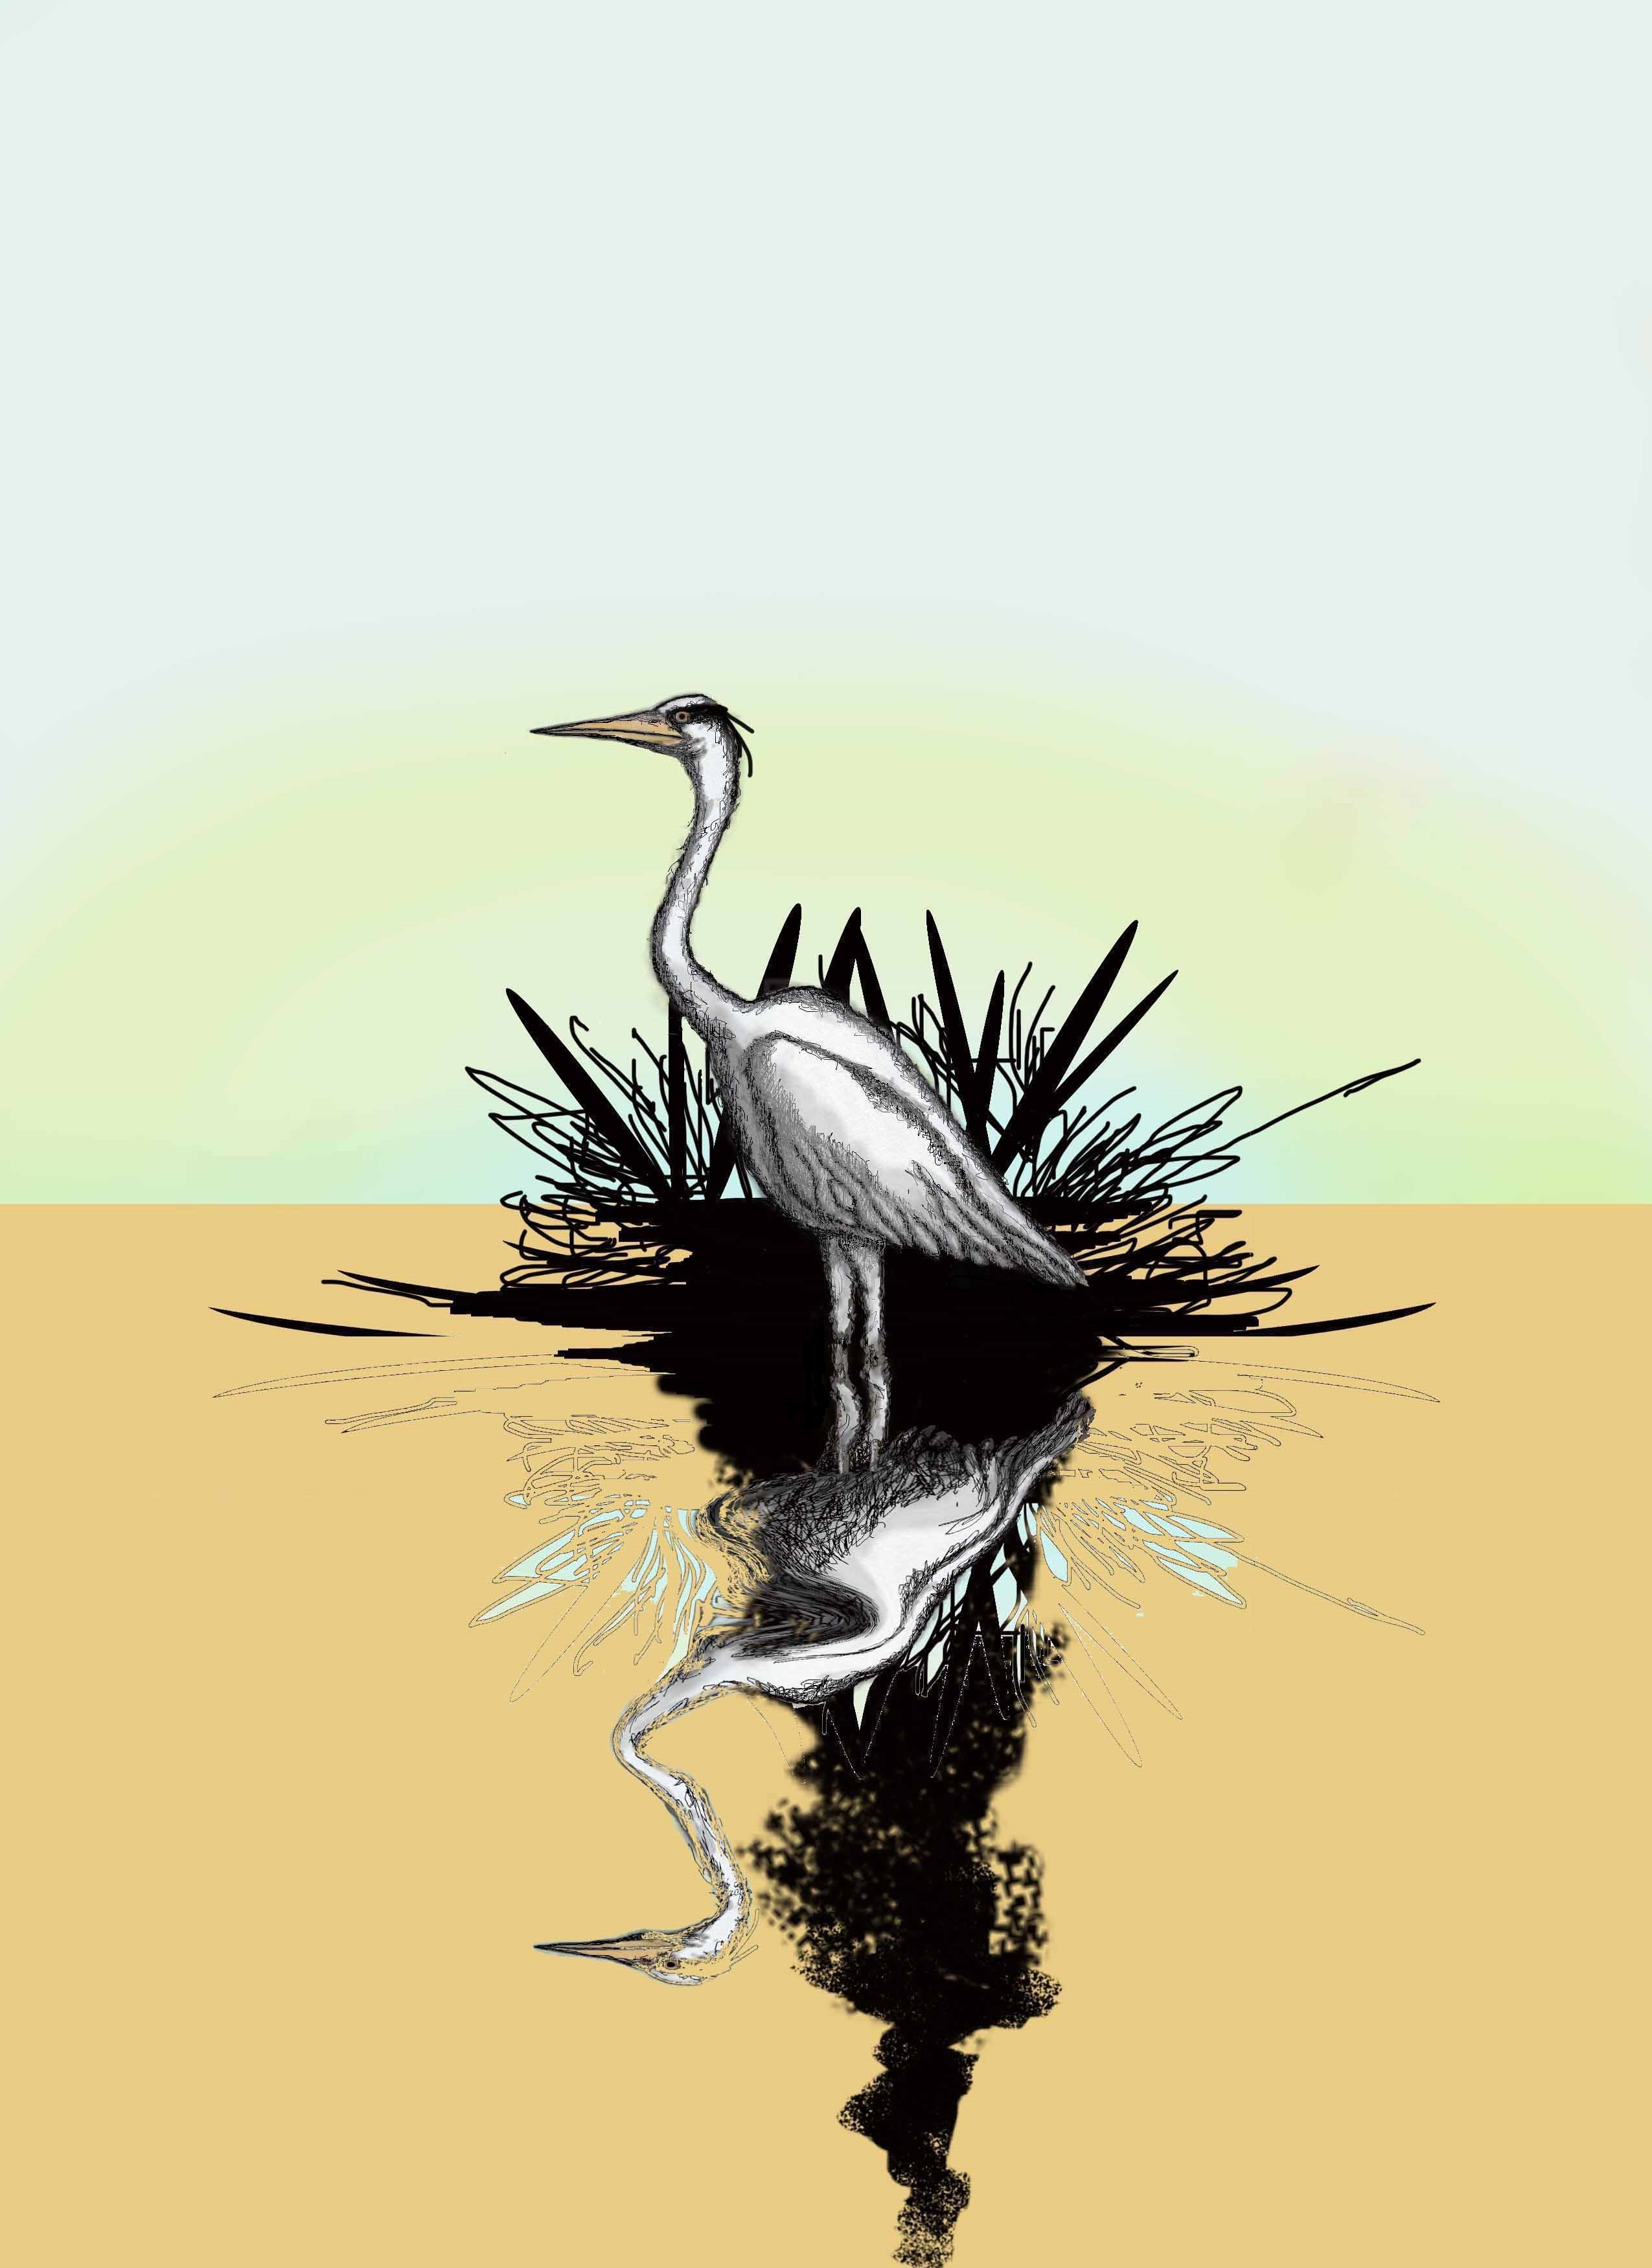 a stylized image of a heron reflected in water by Martin Taankink